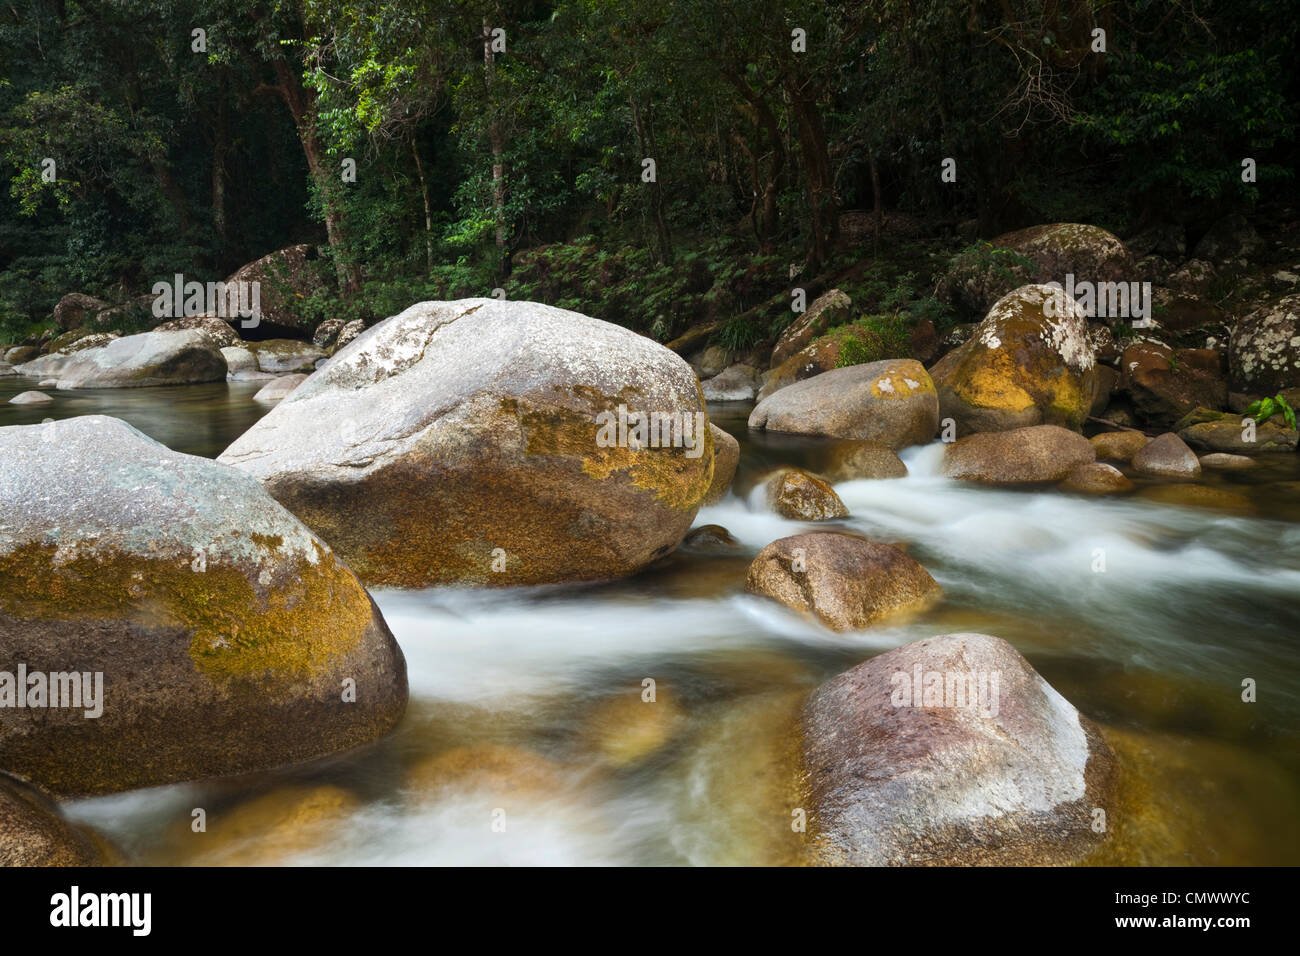 Rainforest stream at Mossman Gorge in the Daintree National Park. Mossman, Queensland, Australia - Stock Image